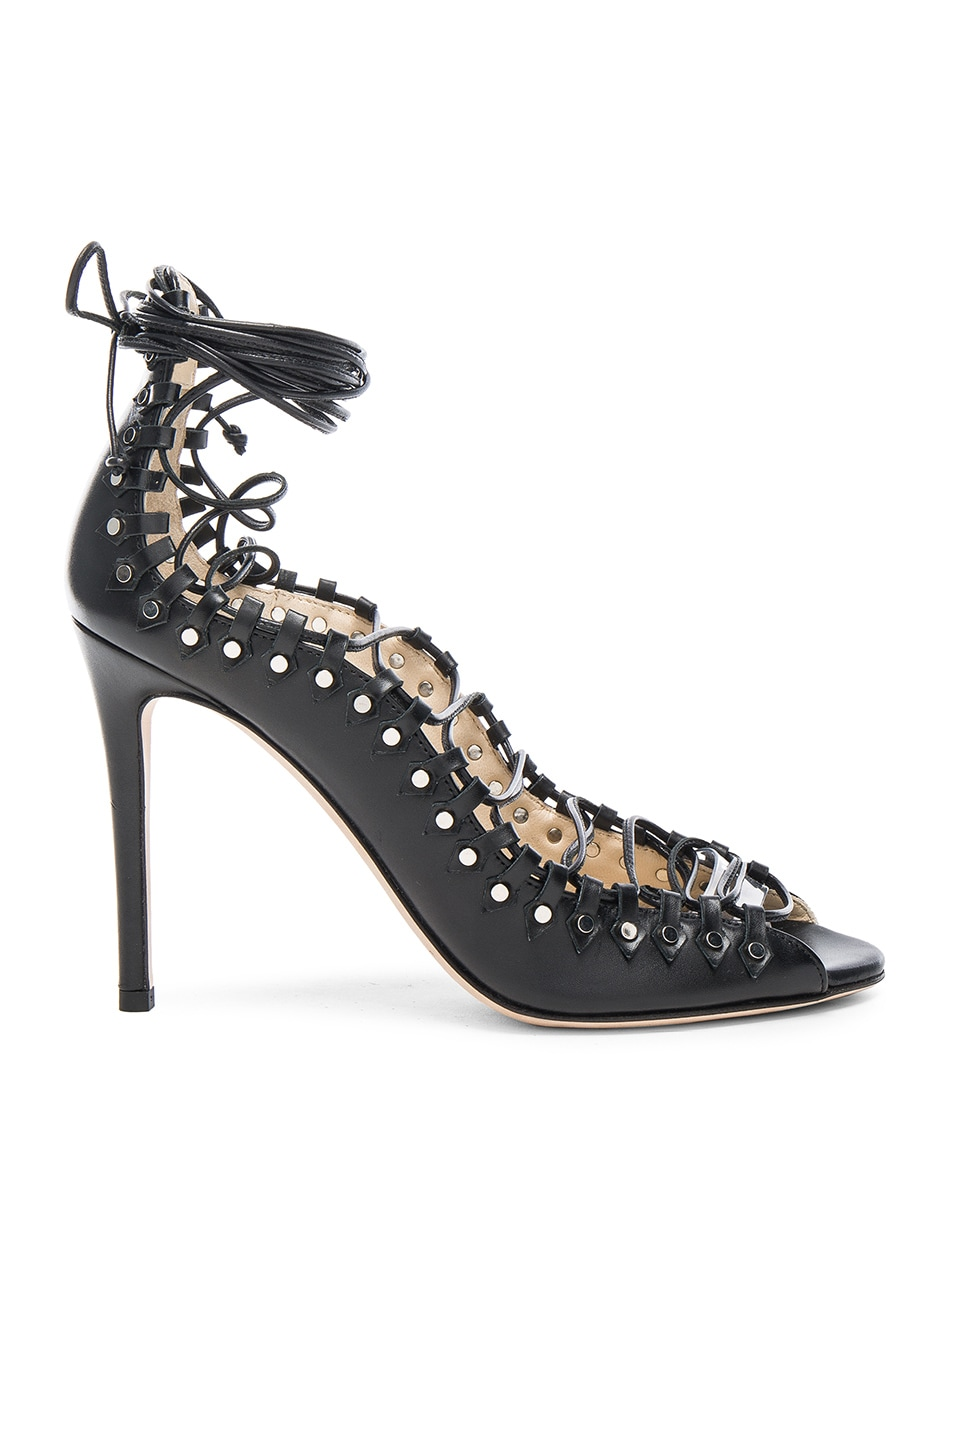 Image 1 of Jimmy Choo Leather Koko Heels in Black & Silver